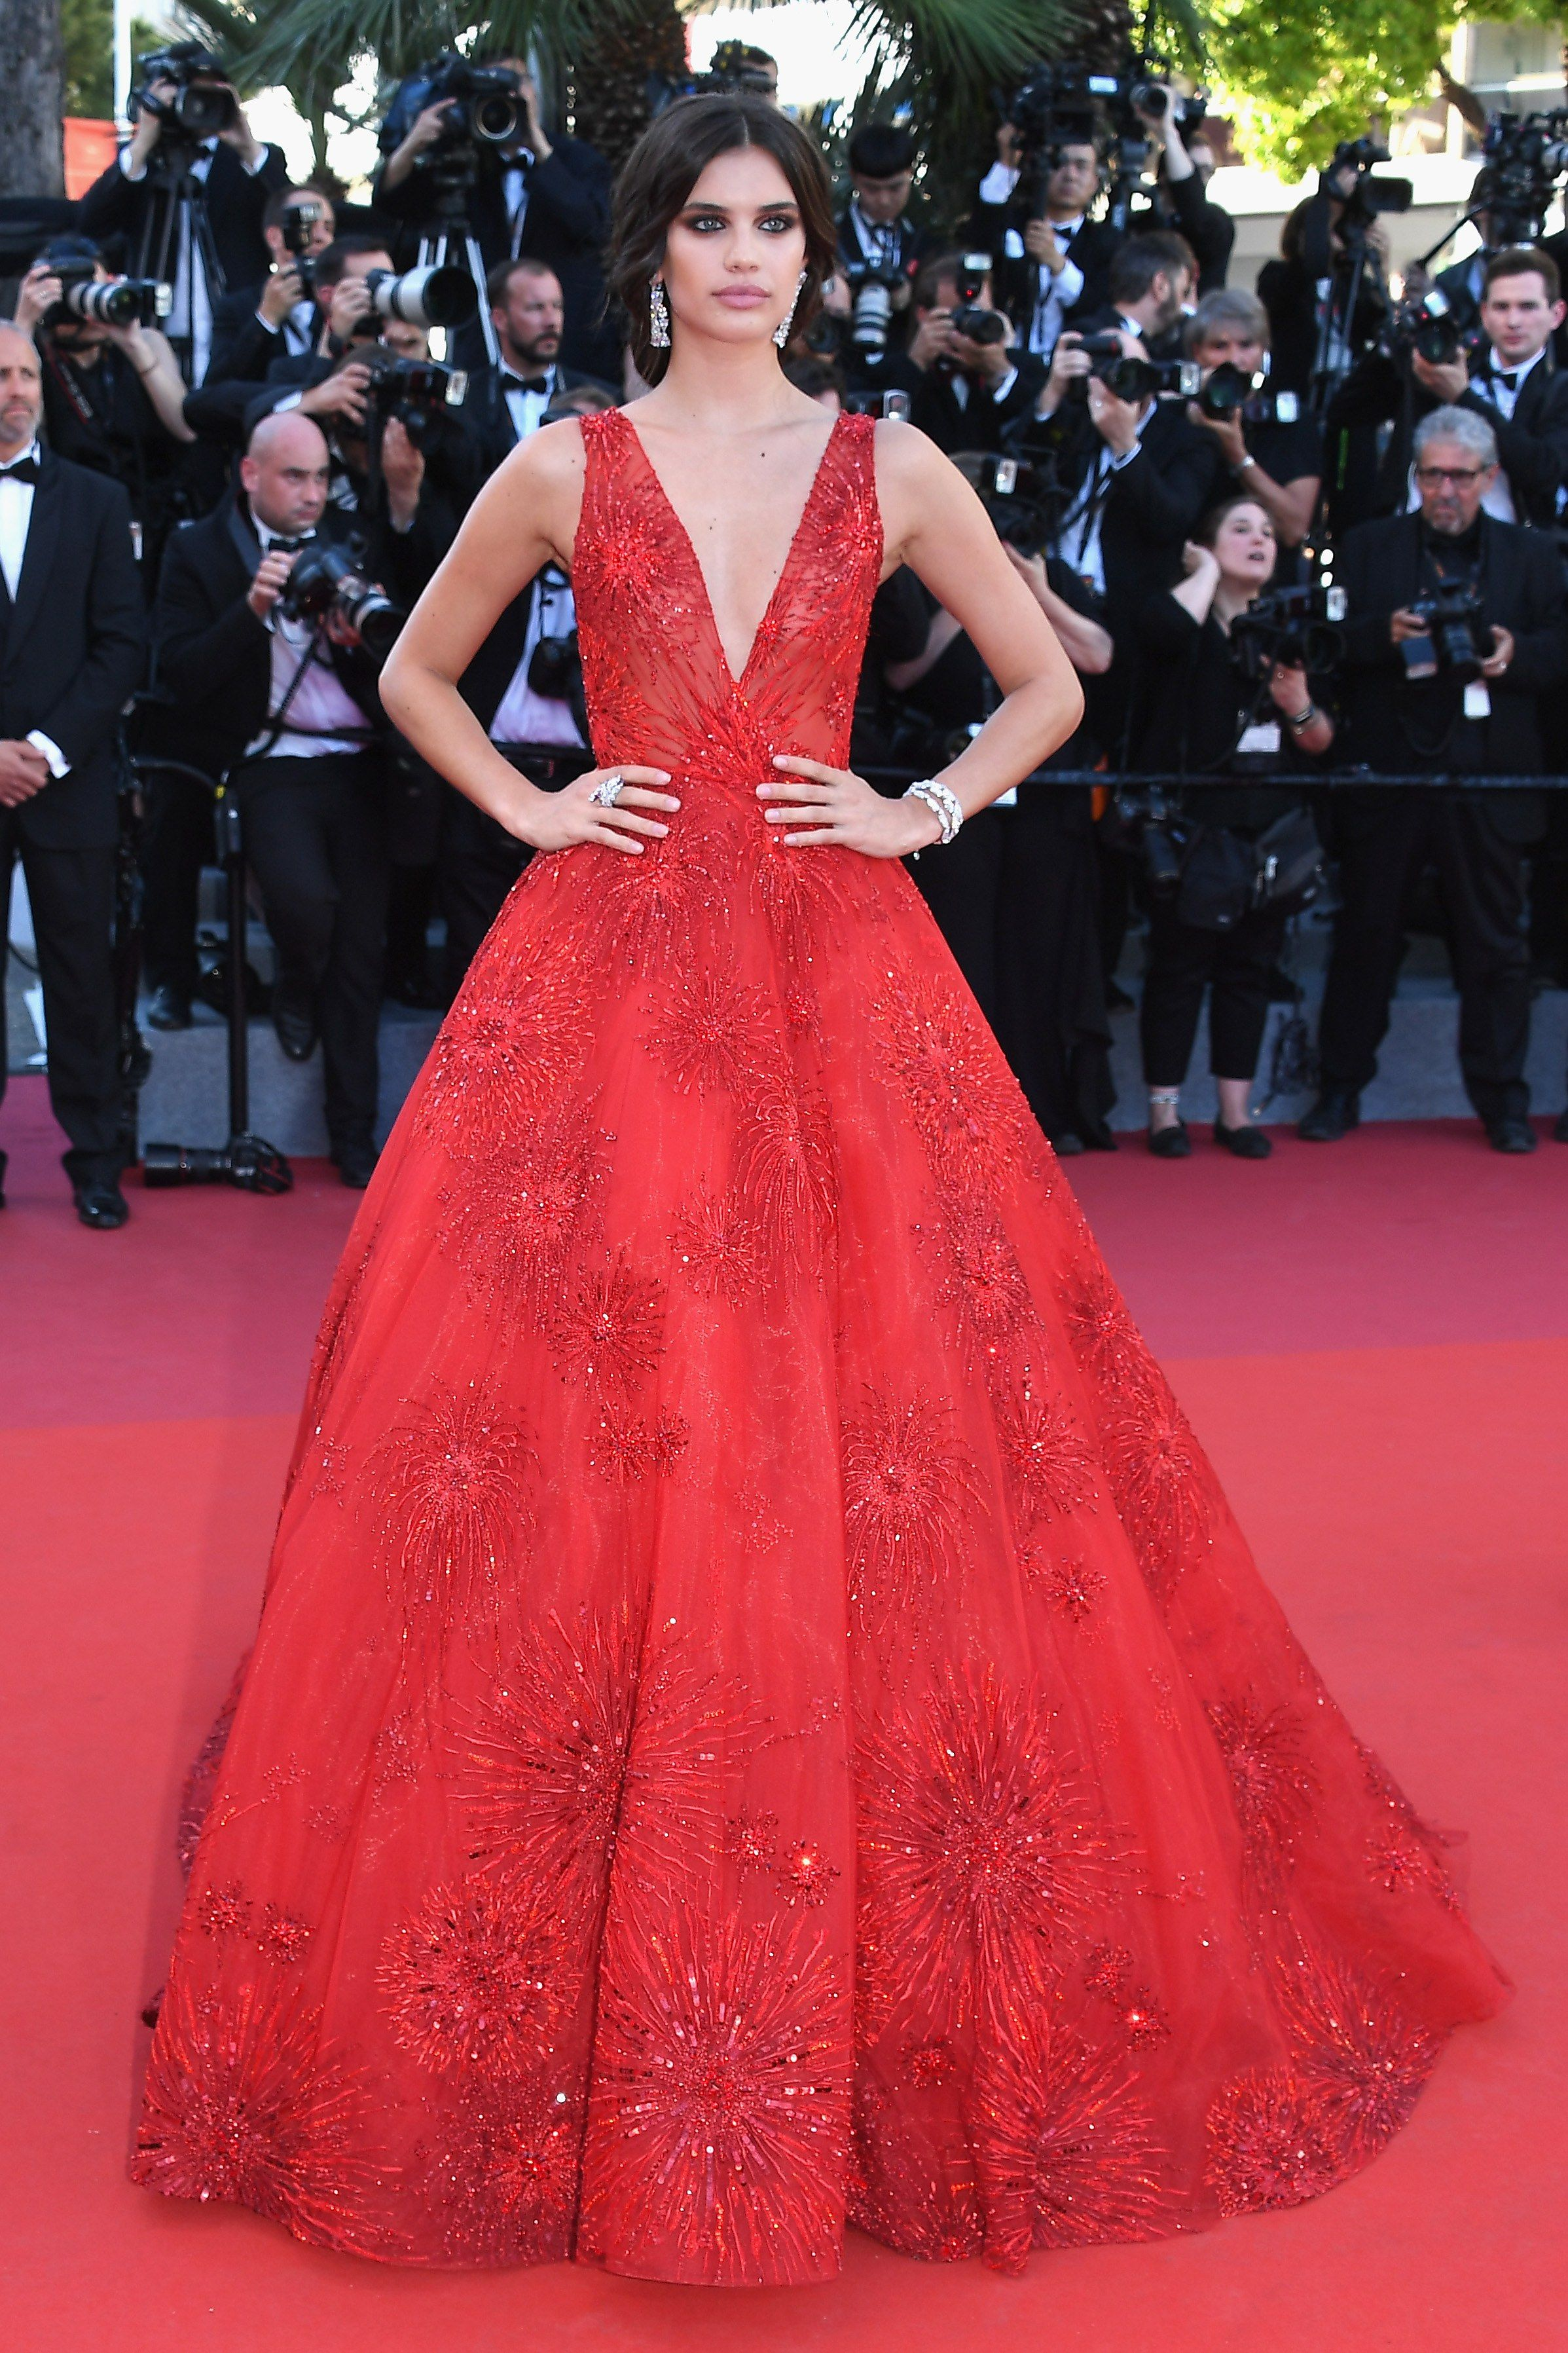 See Every Red Carpet Look From The 2017 Cannes Film